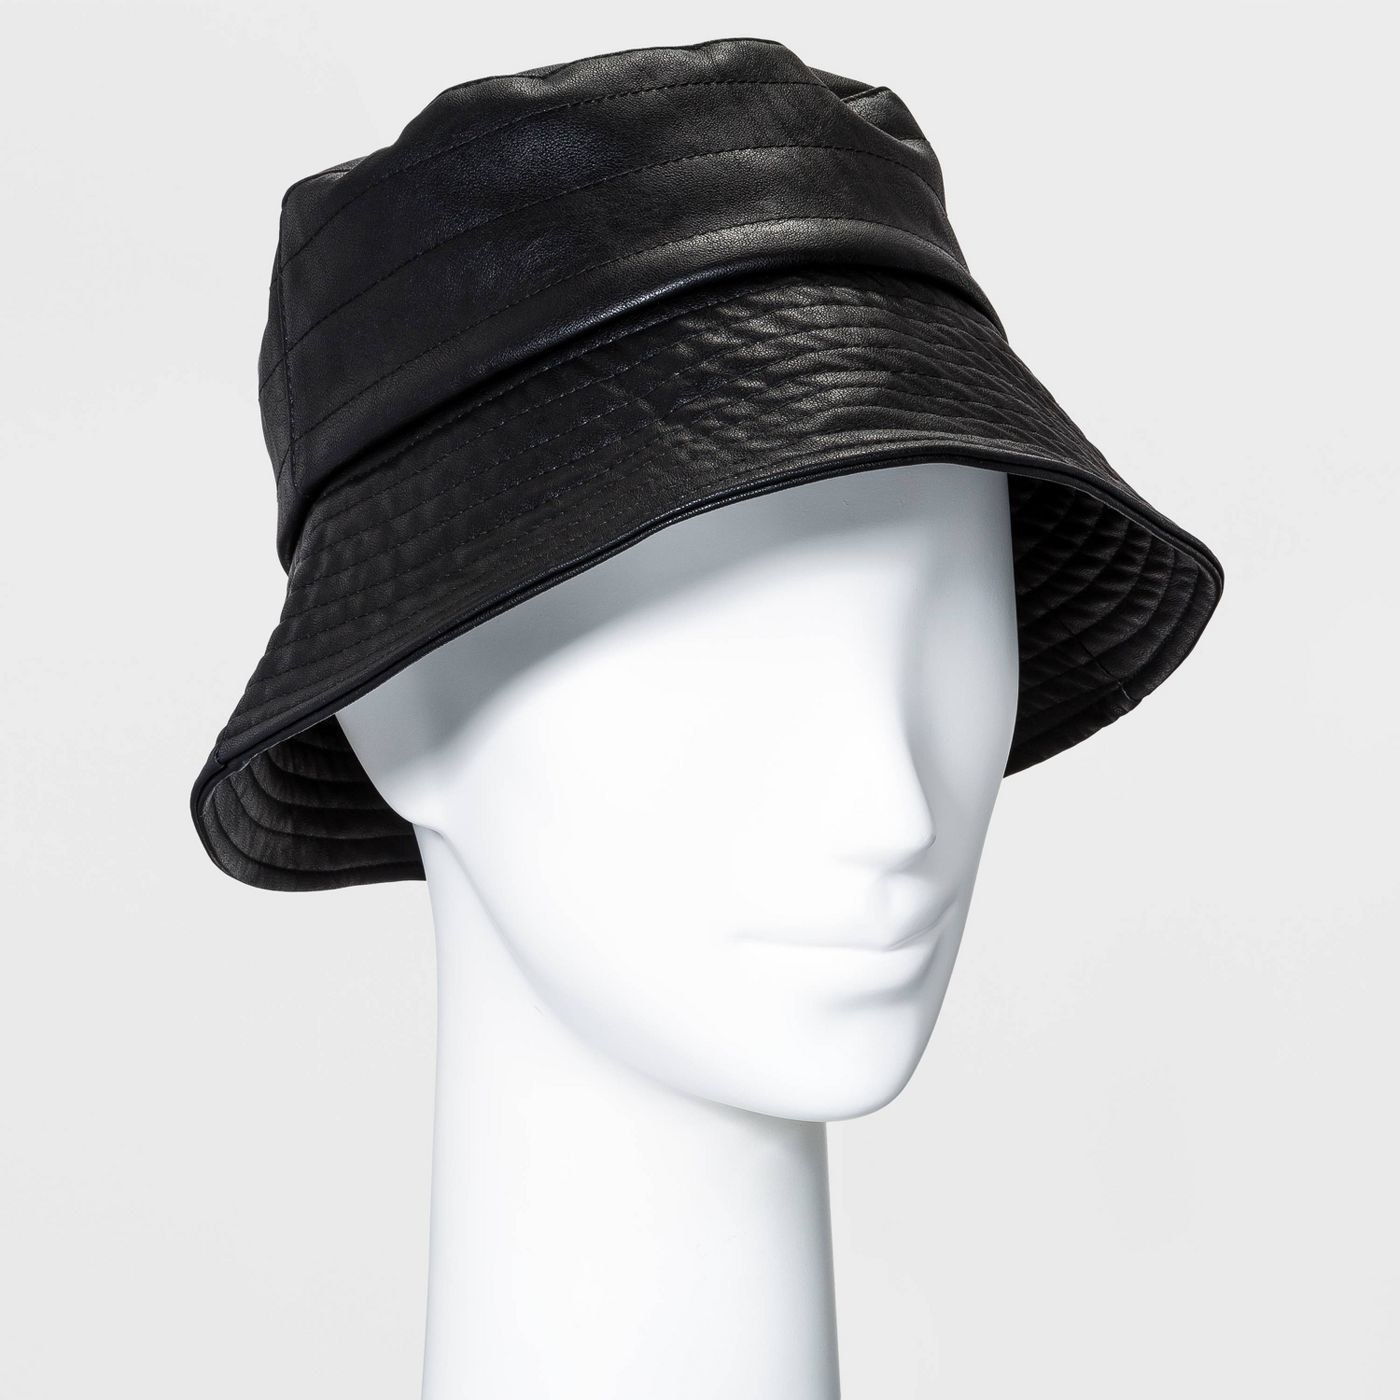 a black leather bucket hat